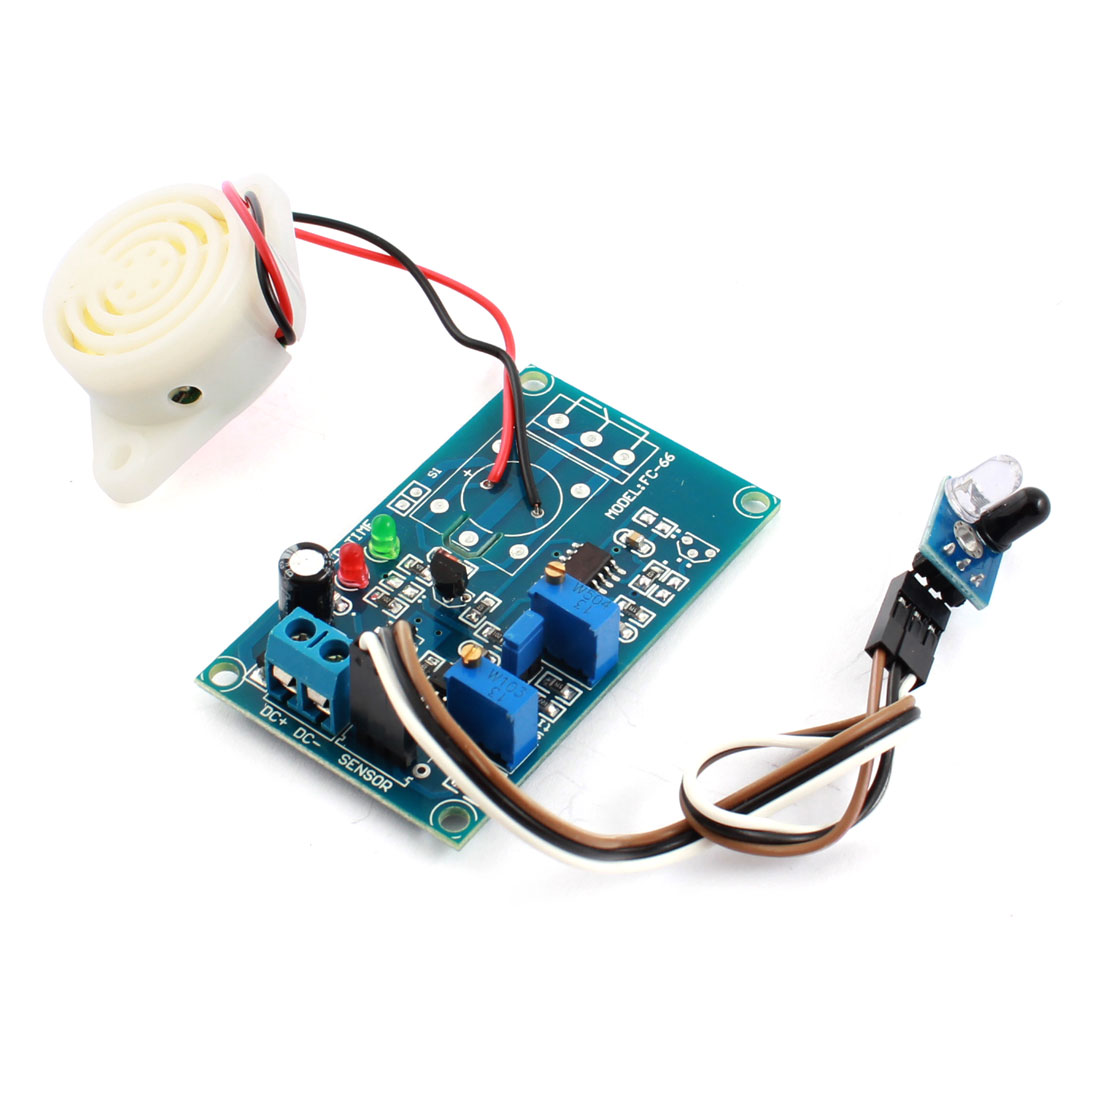 FC-66 DC24V 0-20S 0-60cm Infrared Reflection Infrared Sensor Time Delay Module w Alarm Buzzer